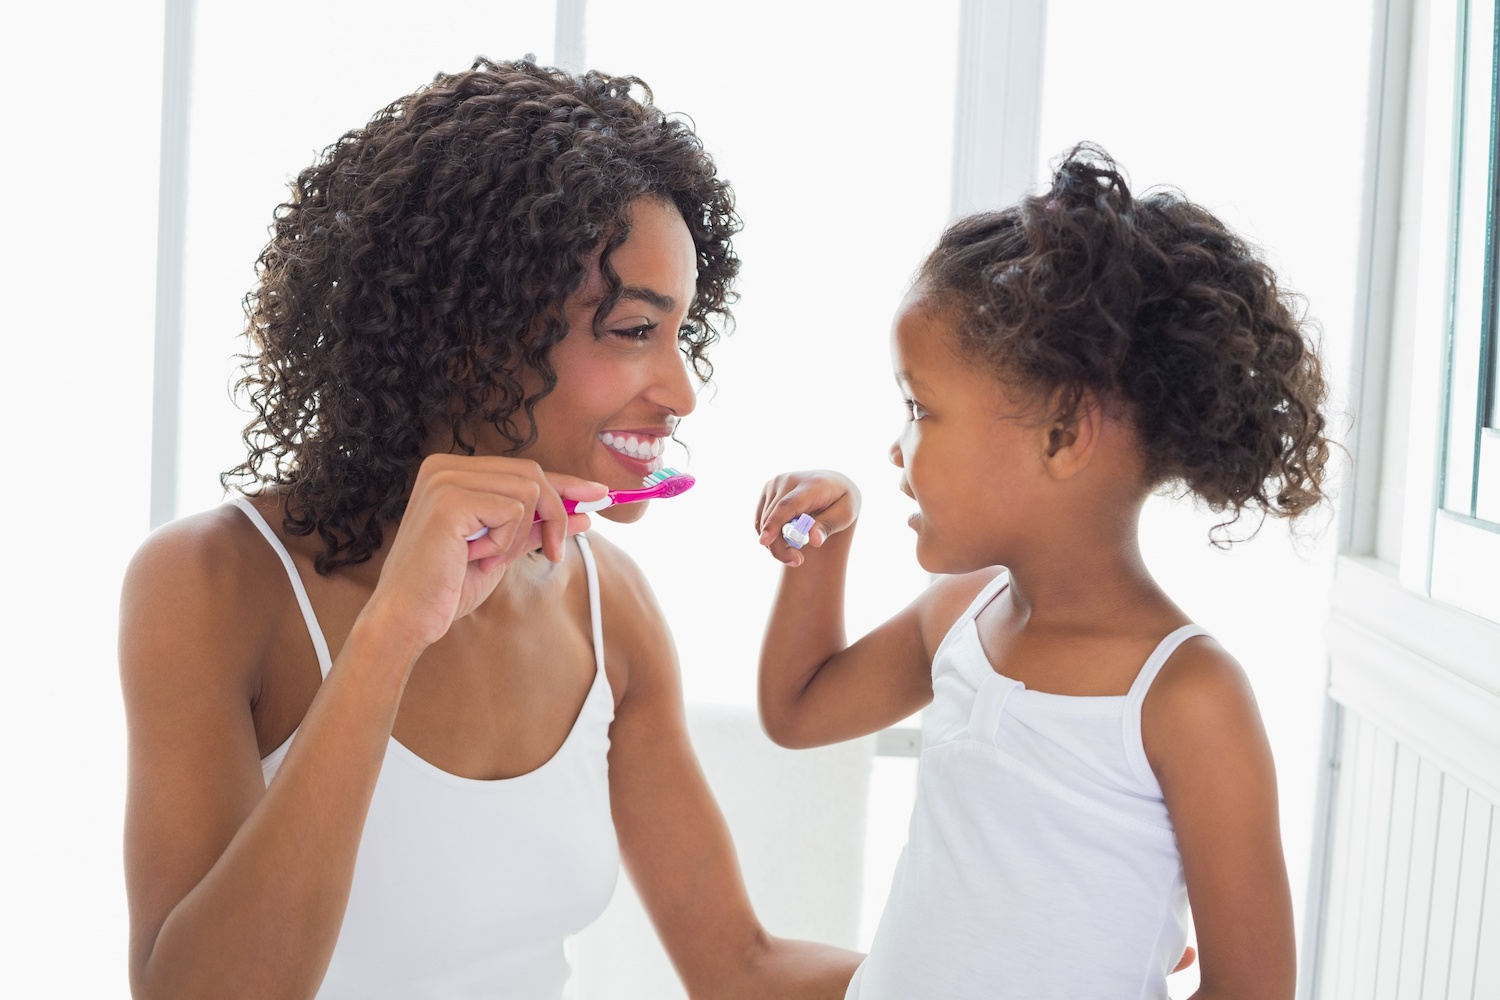 parent and child brushing teeth together